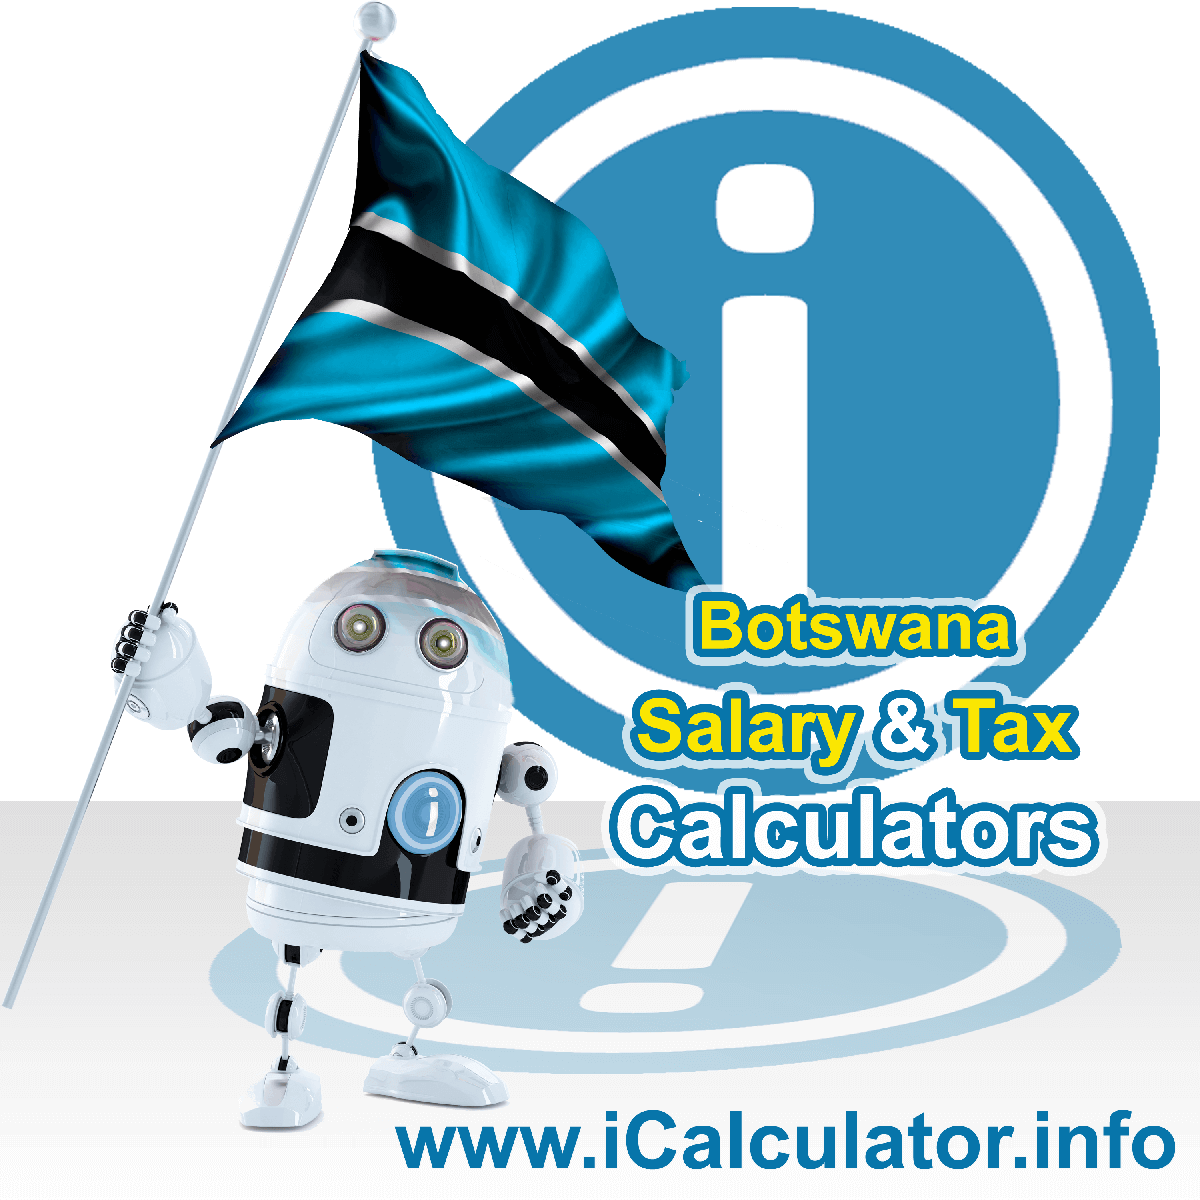 Botswana Wage Calculator. This image shows the Botswana flag and information relating to the tax formula for the Botswana Tax Calculator